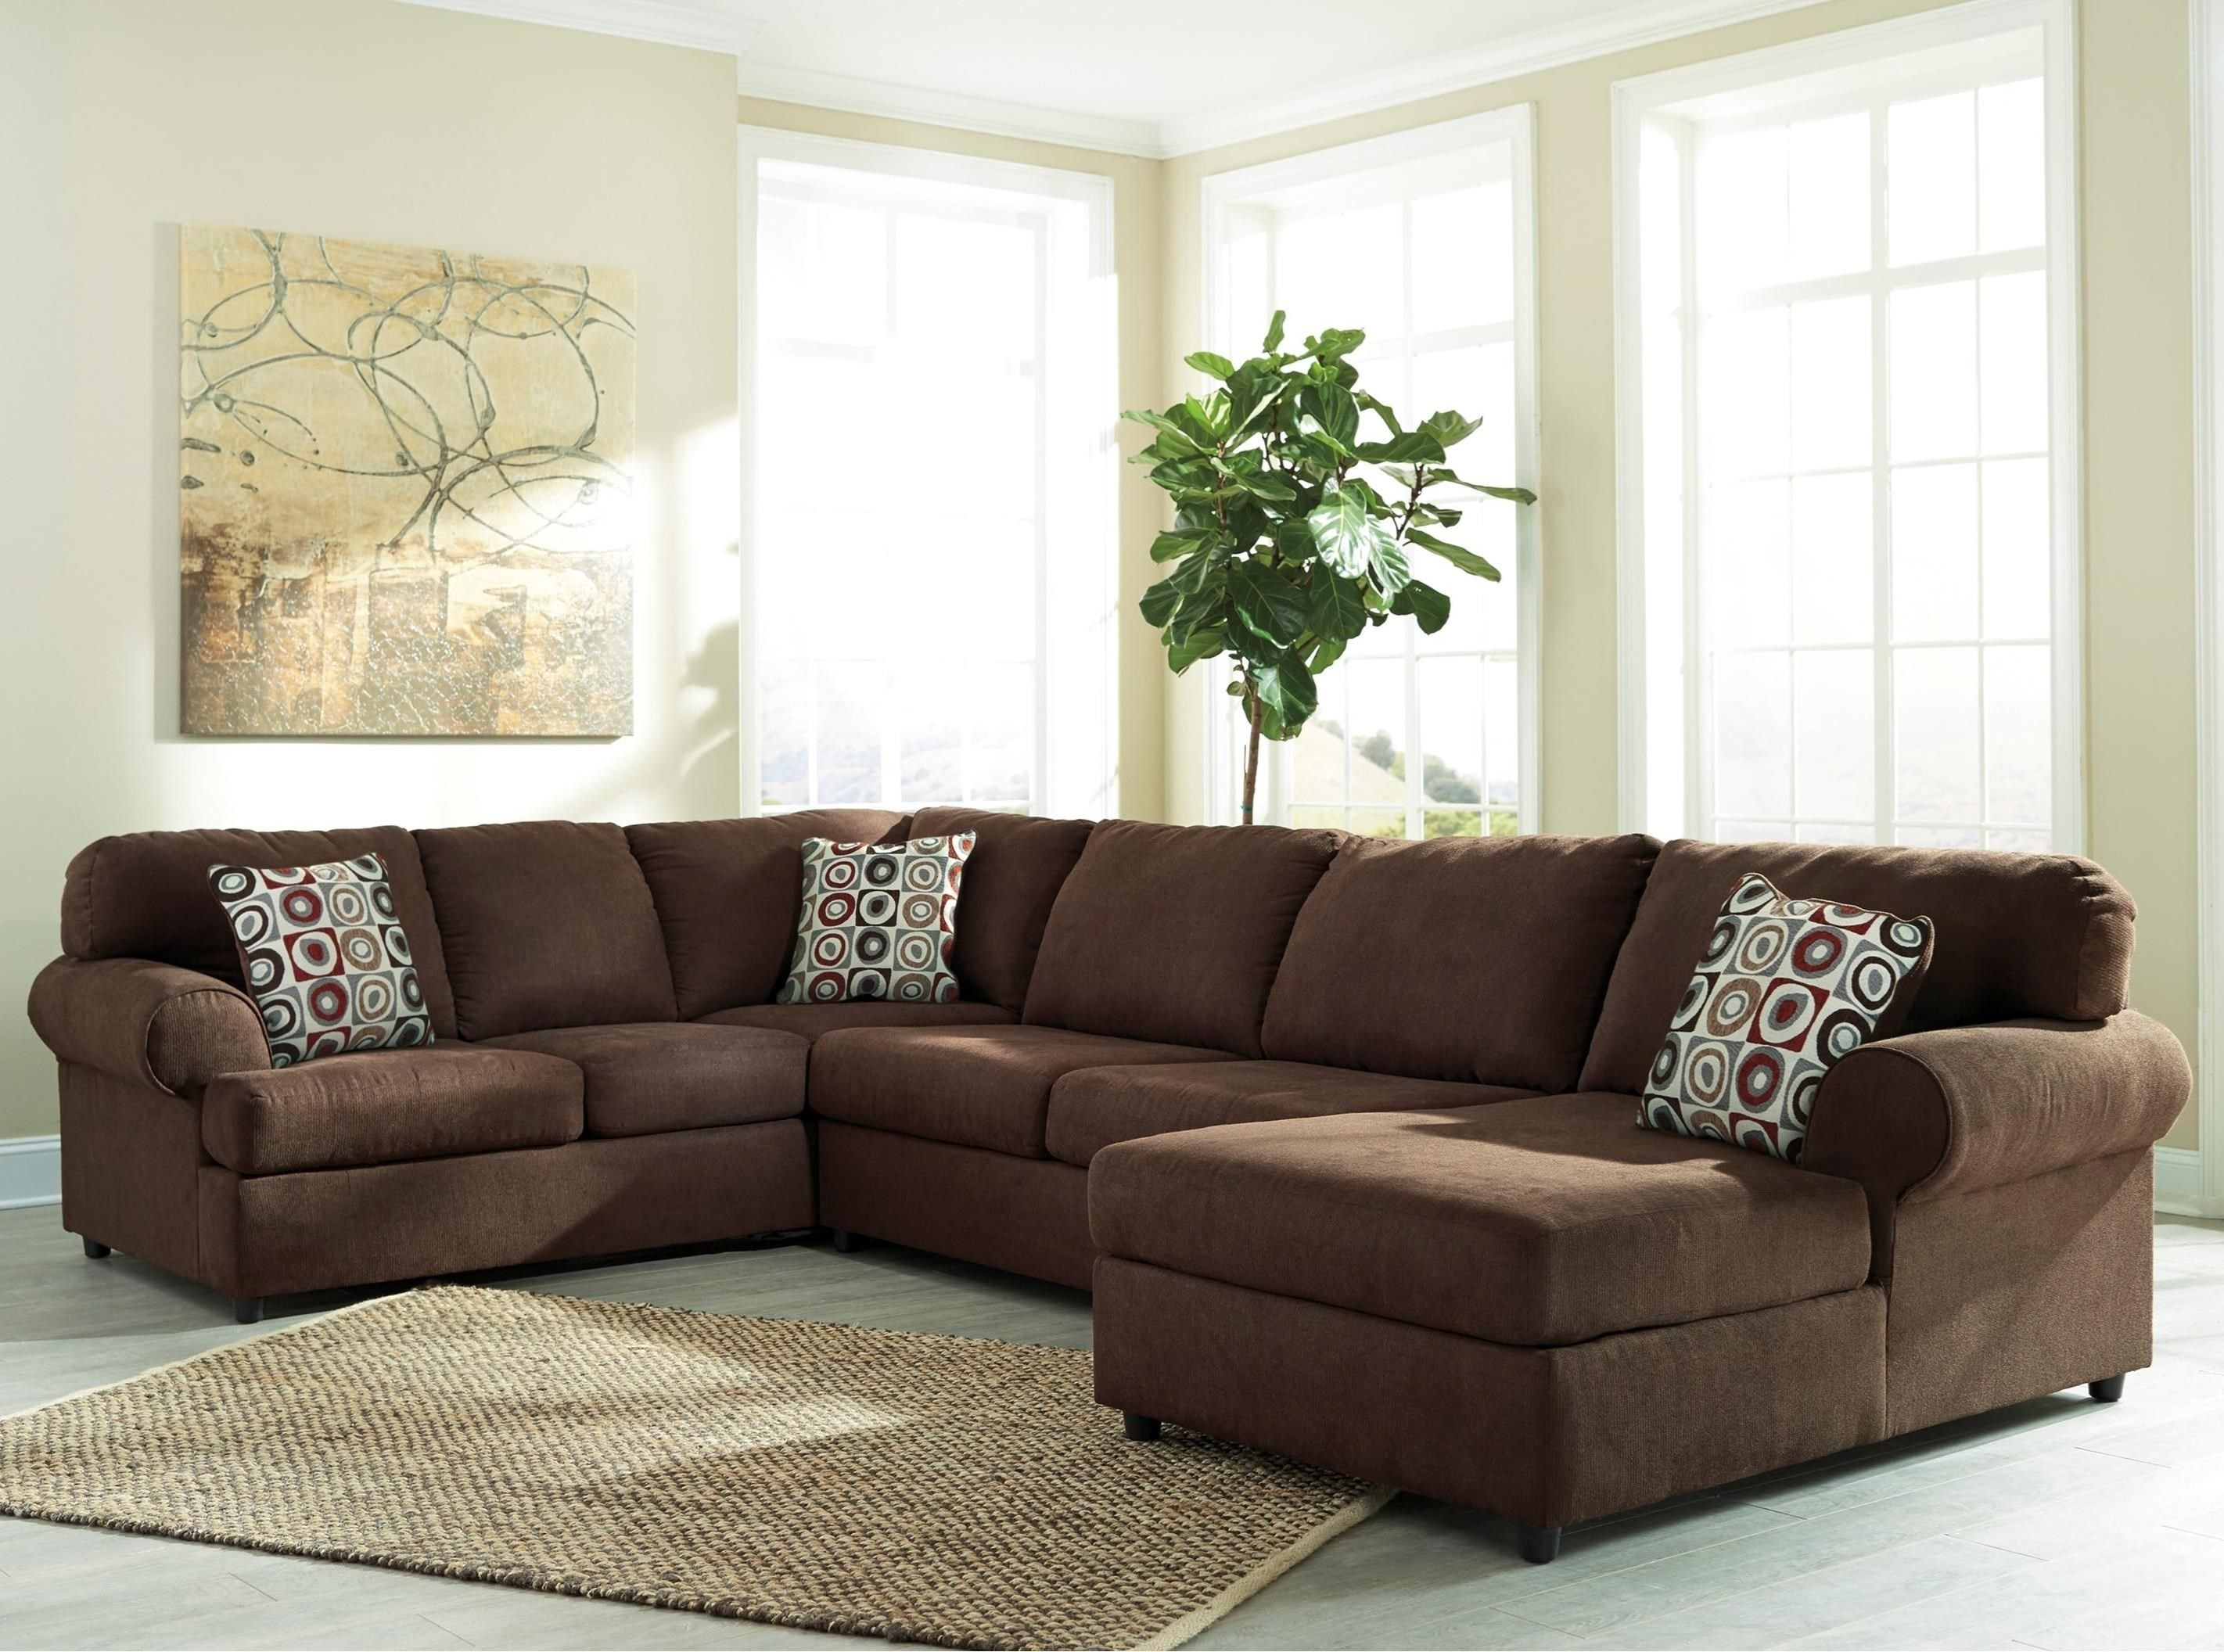 Jayceon 3 Piece Sectional With Chaisesignature Designashley Inside Royal Furniture Sectional Sofas (View 6 of 10)